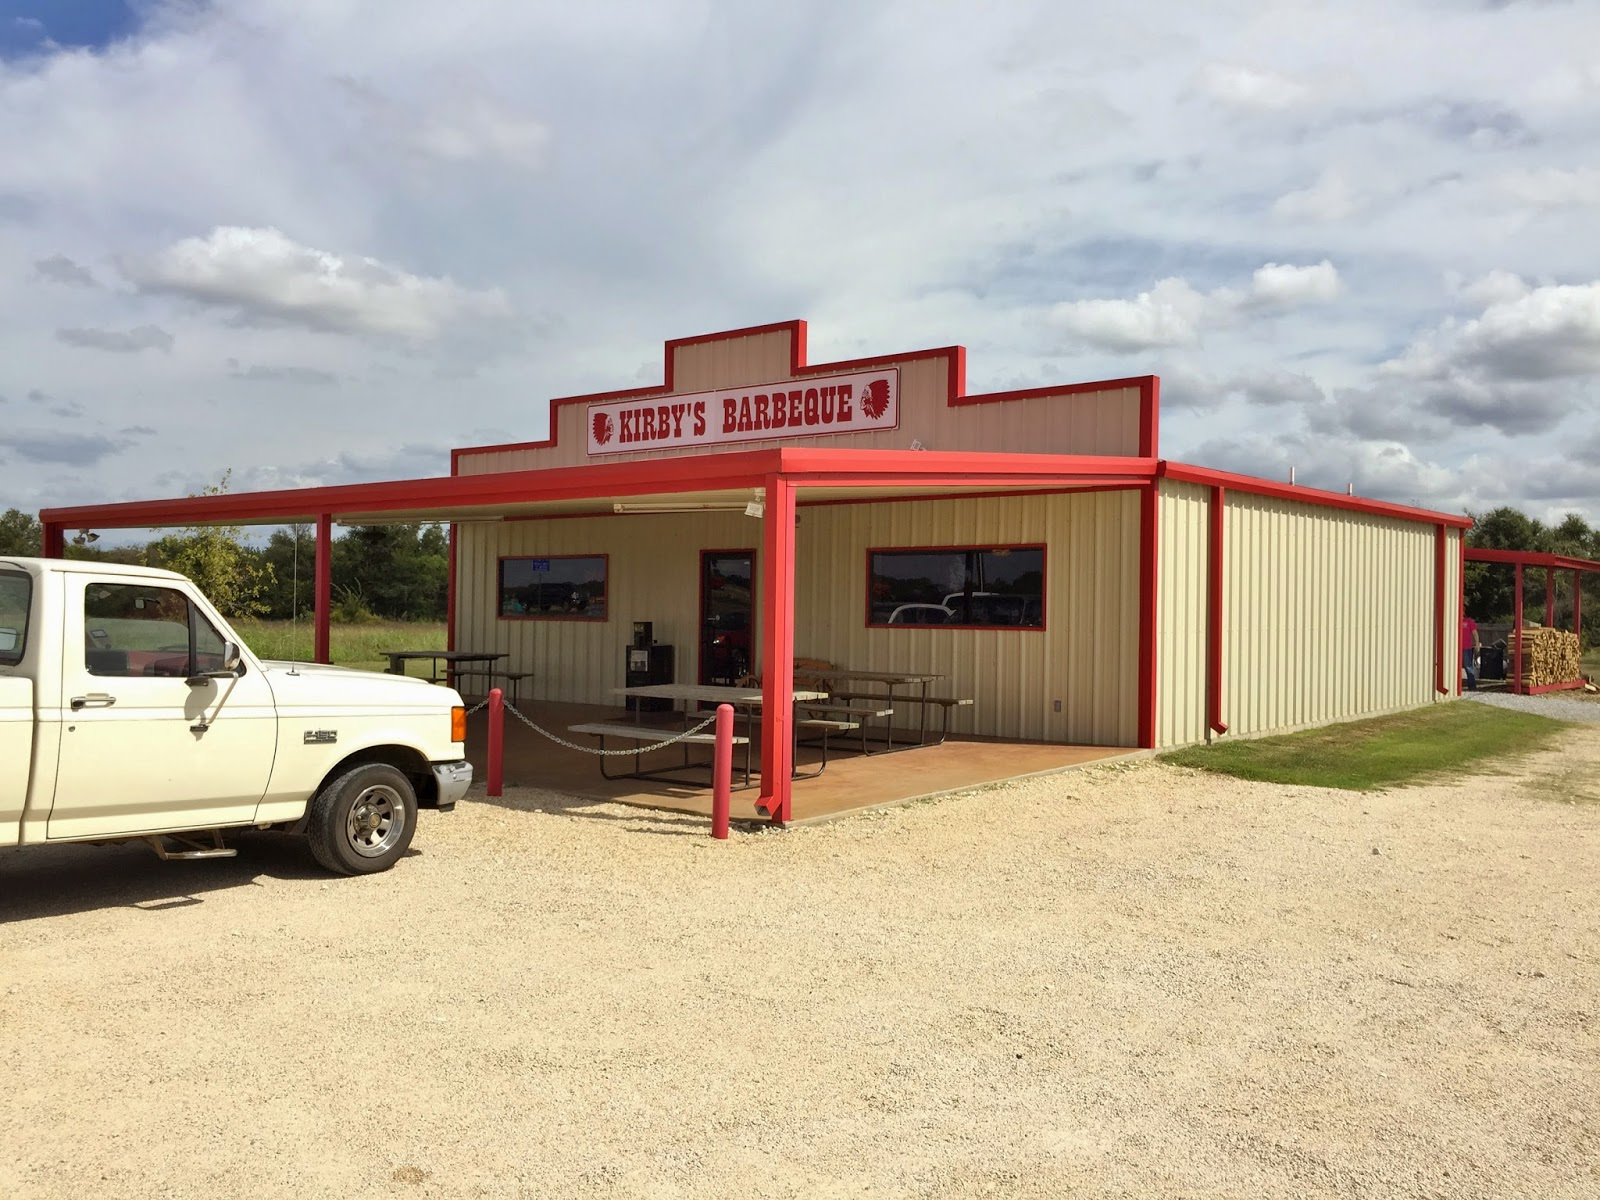 The simple building that houses Kirby's Barbecue